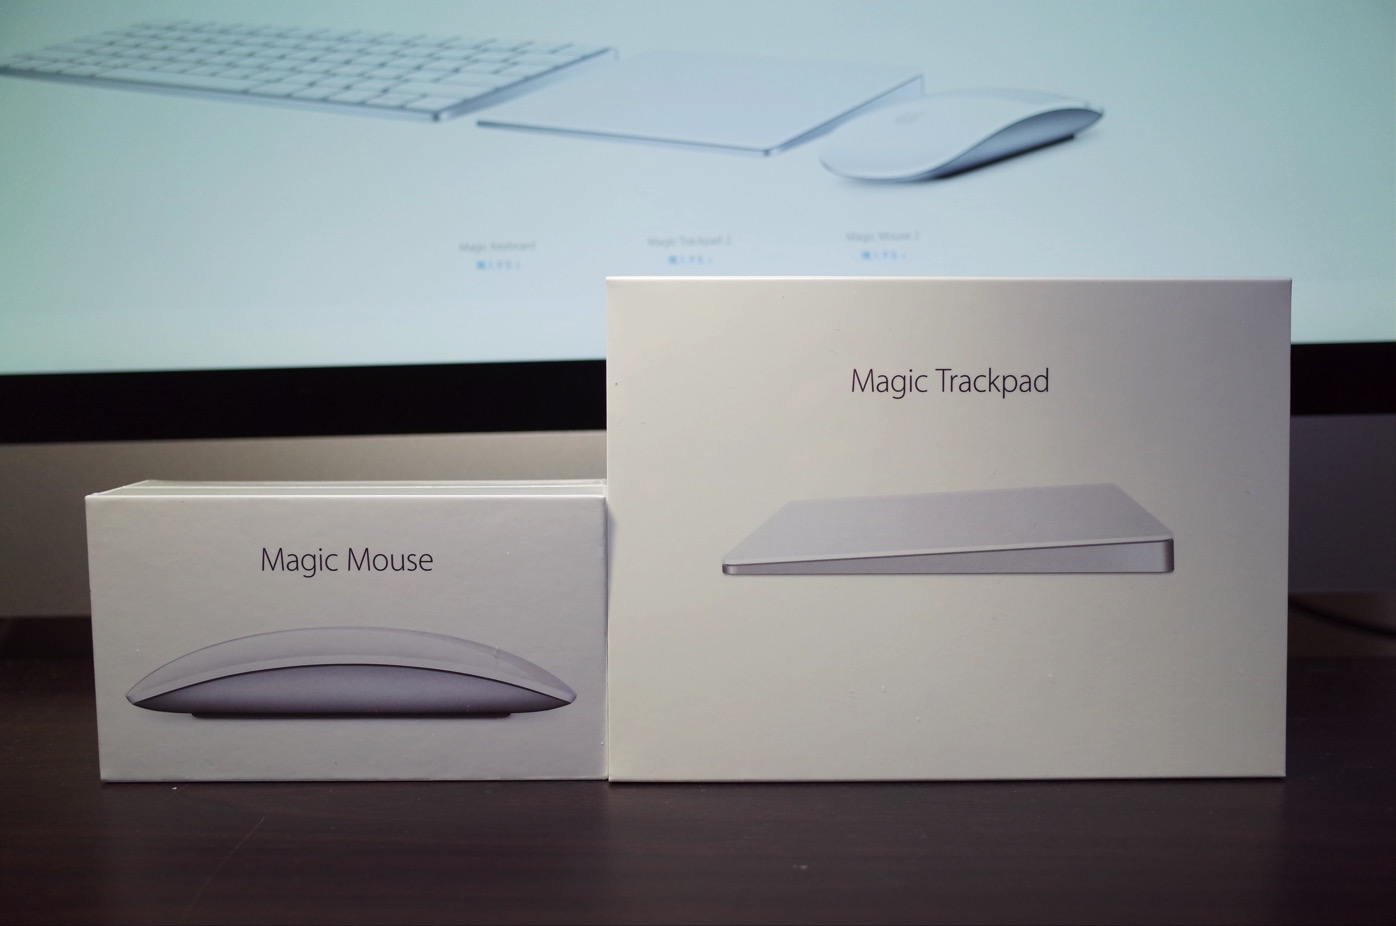 [Apple]「Magic Trackpad 2」「Magic Mouse 2」を1日使ってみた感想